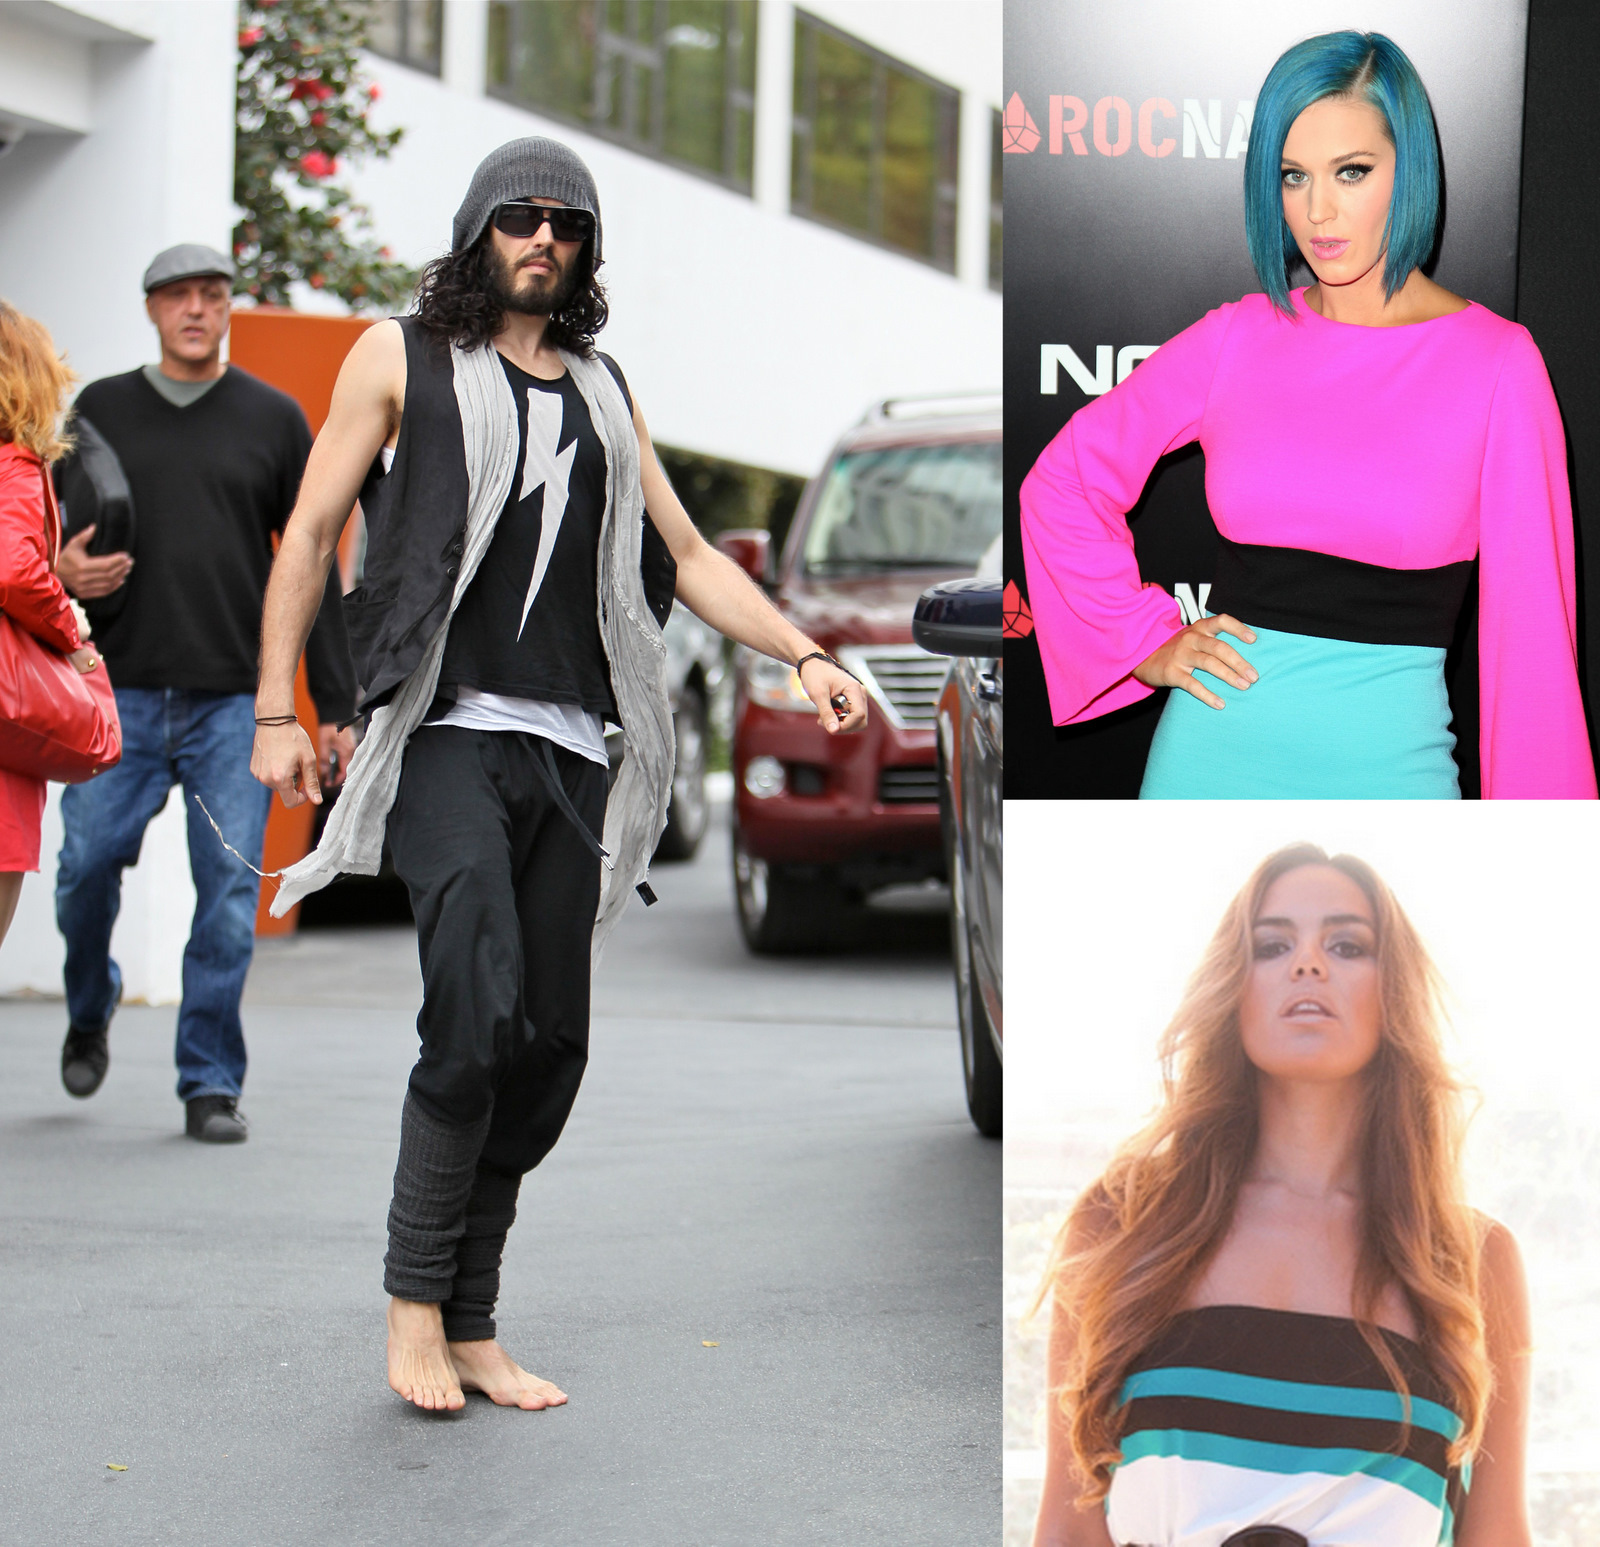 Russell Brand, Katy Perry and Oriela Medellin